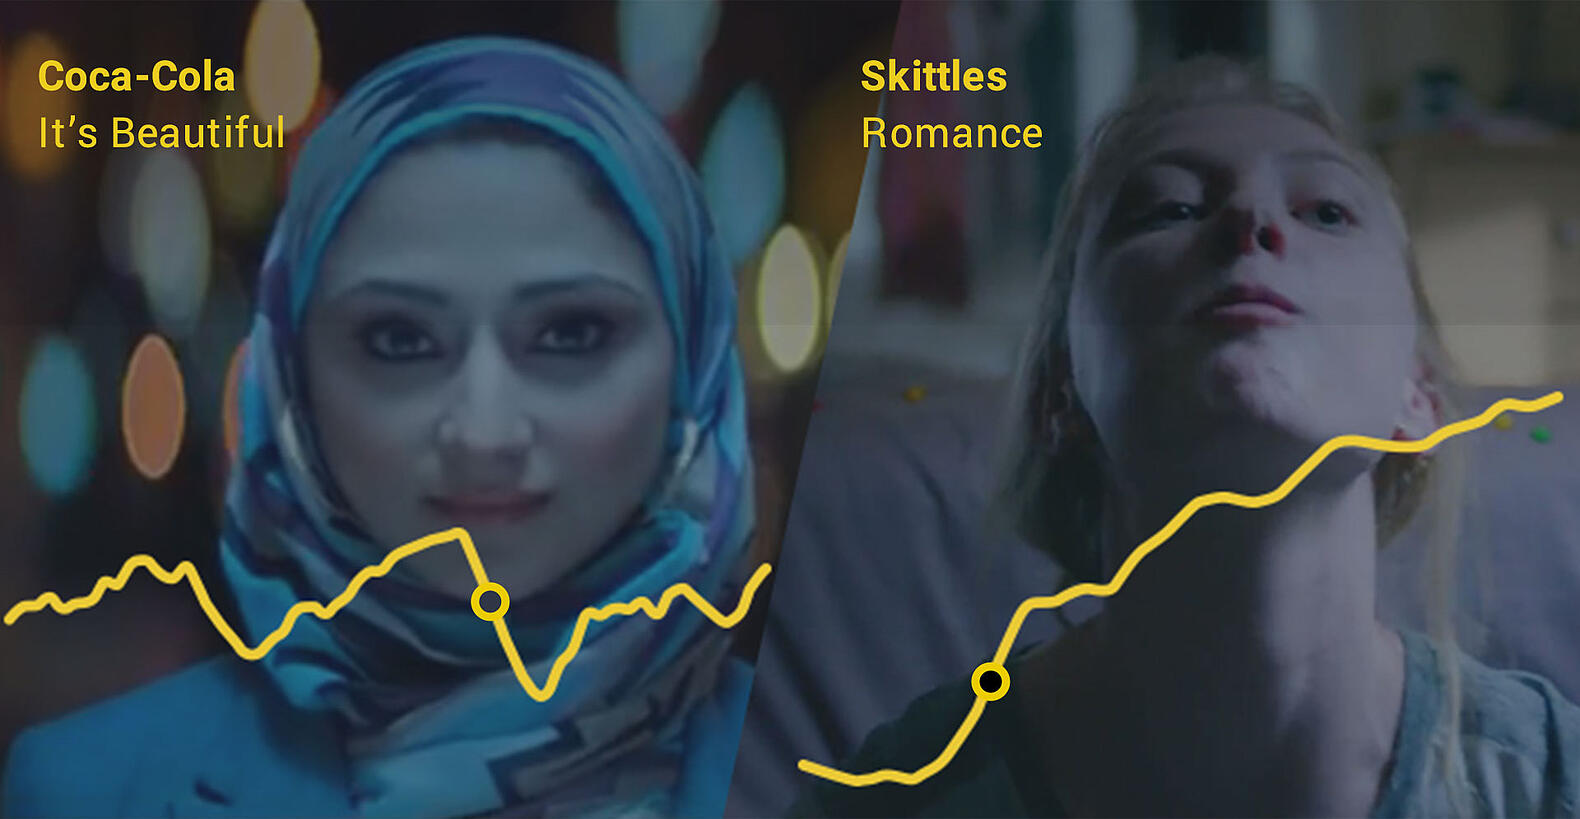 Realeyes emotion data for Coca-Cola and Skittles